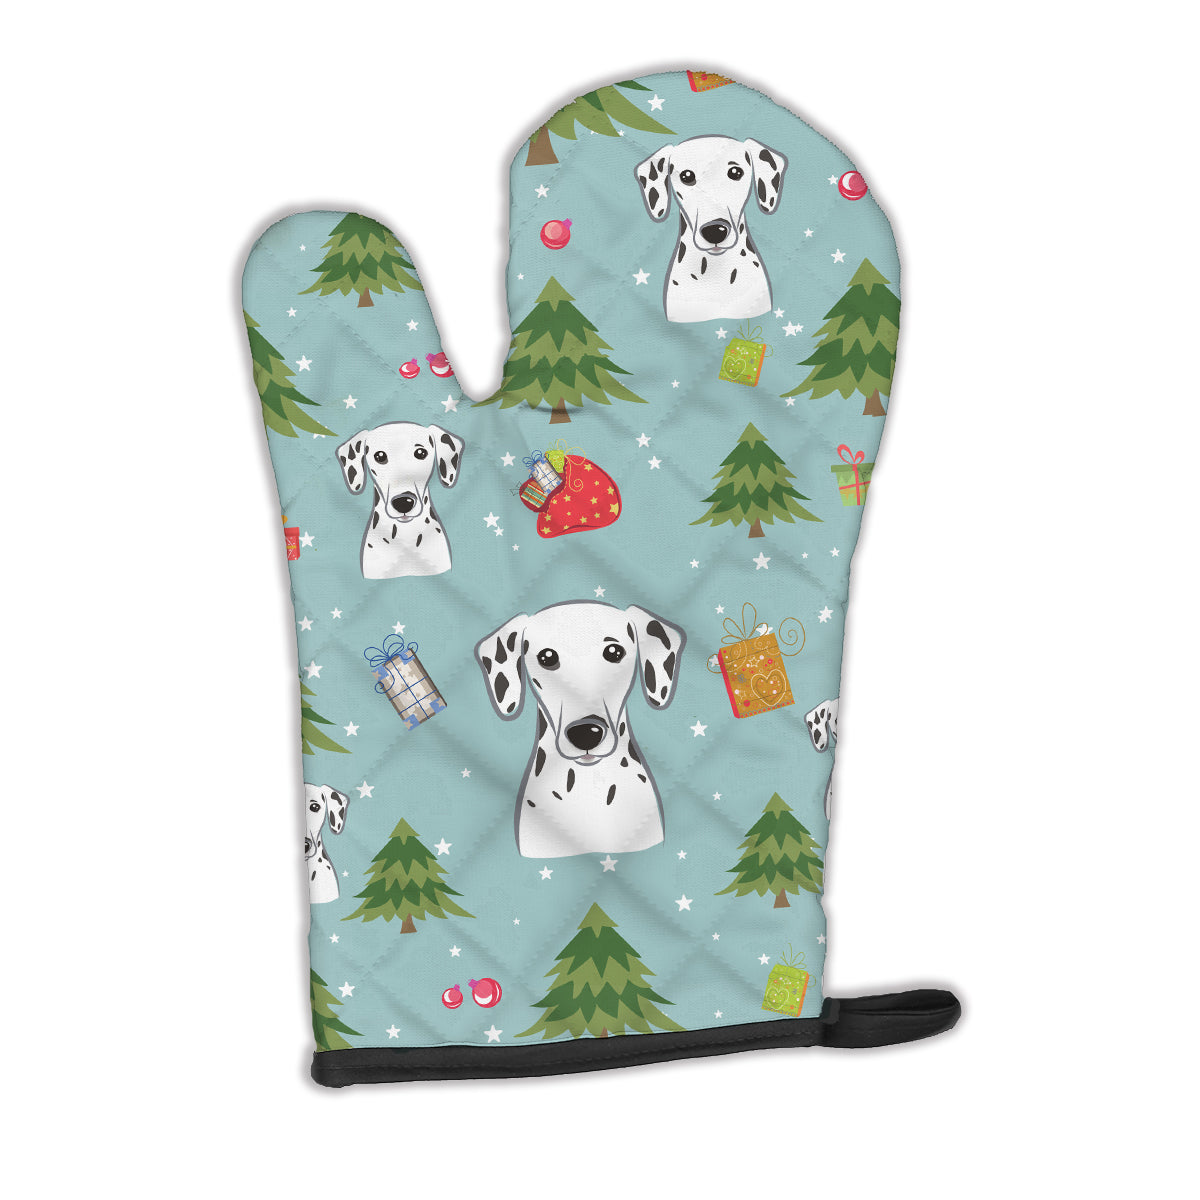 Christmas Dalmatian Oven Mitt BB4999OVMT by Caroline's Treasures